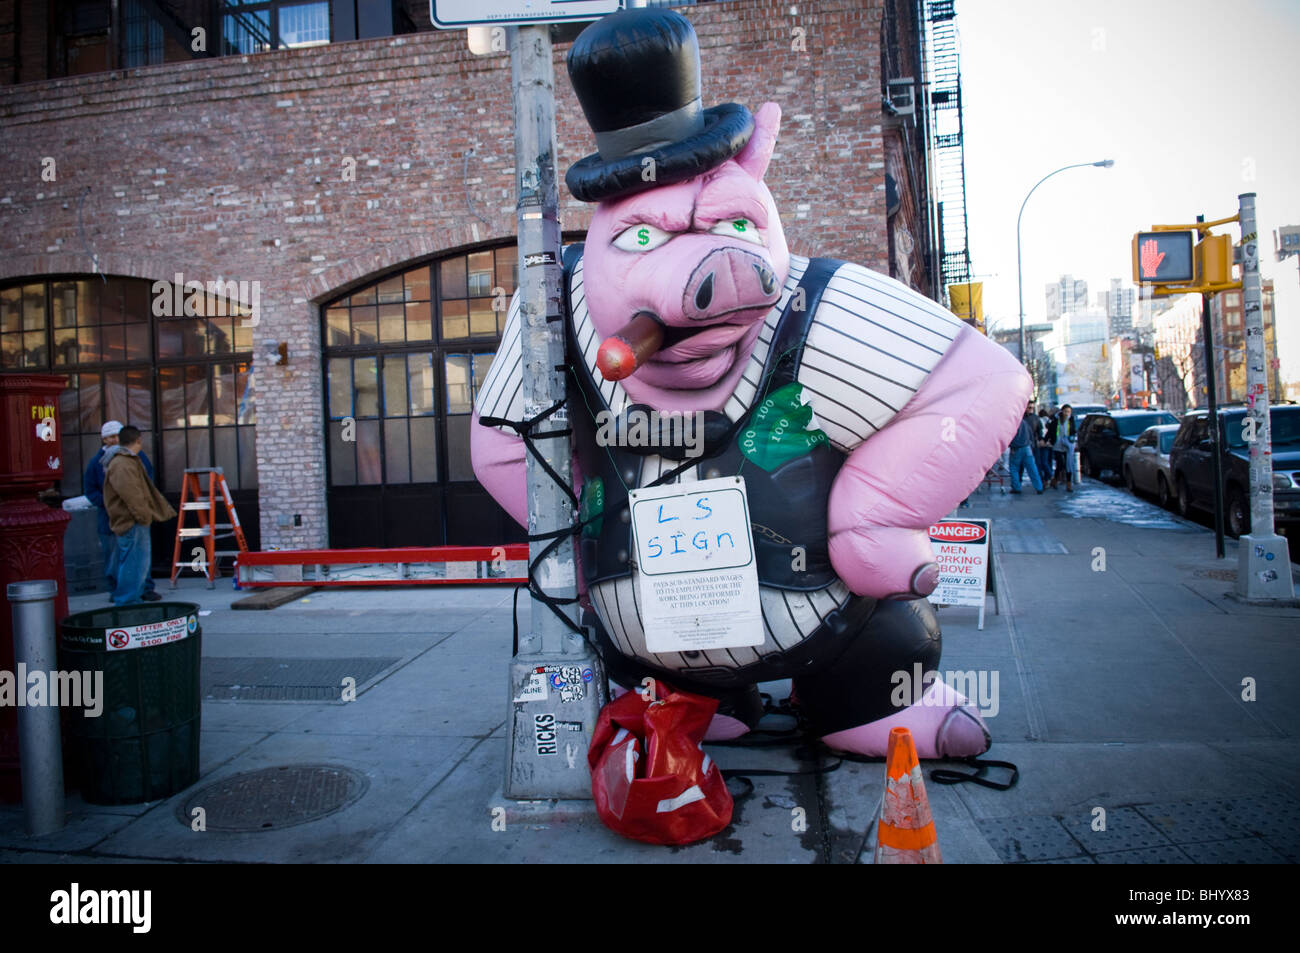 Giant inflatable capitalist pig outside Keith McNally's new restaurant Pulino's in the Nolita neighborhood - Stock Image